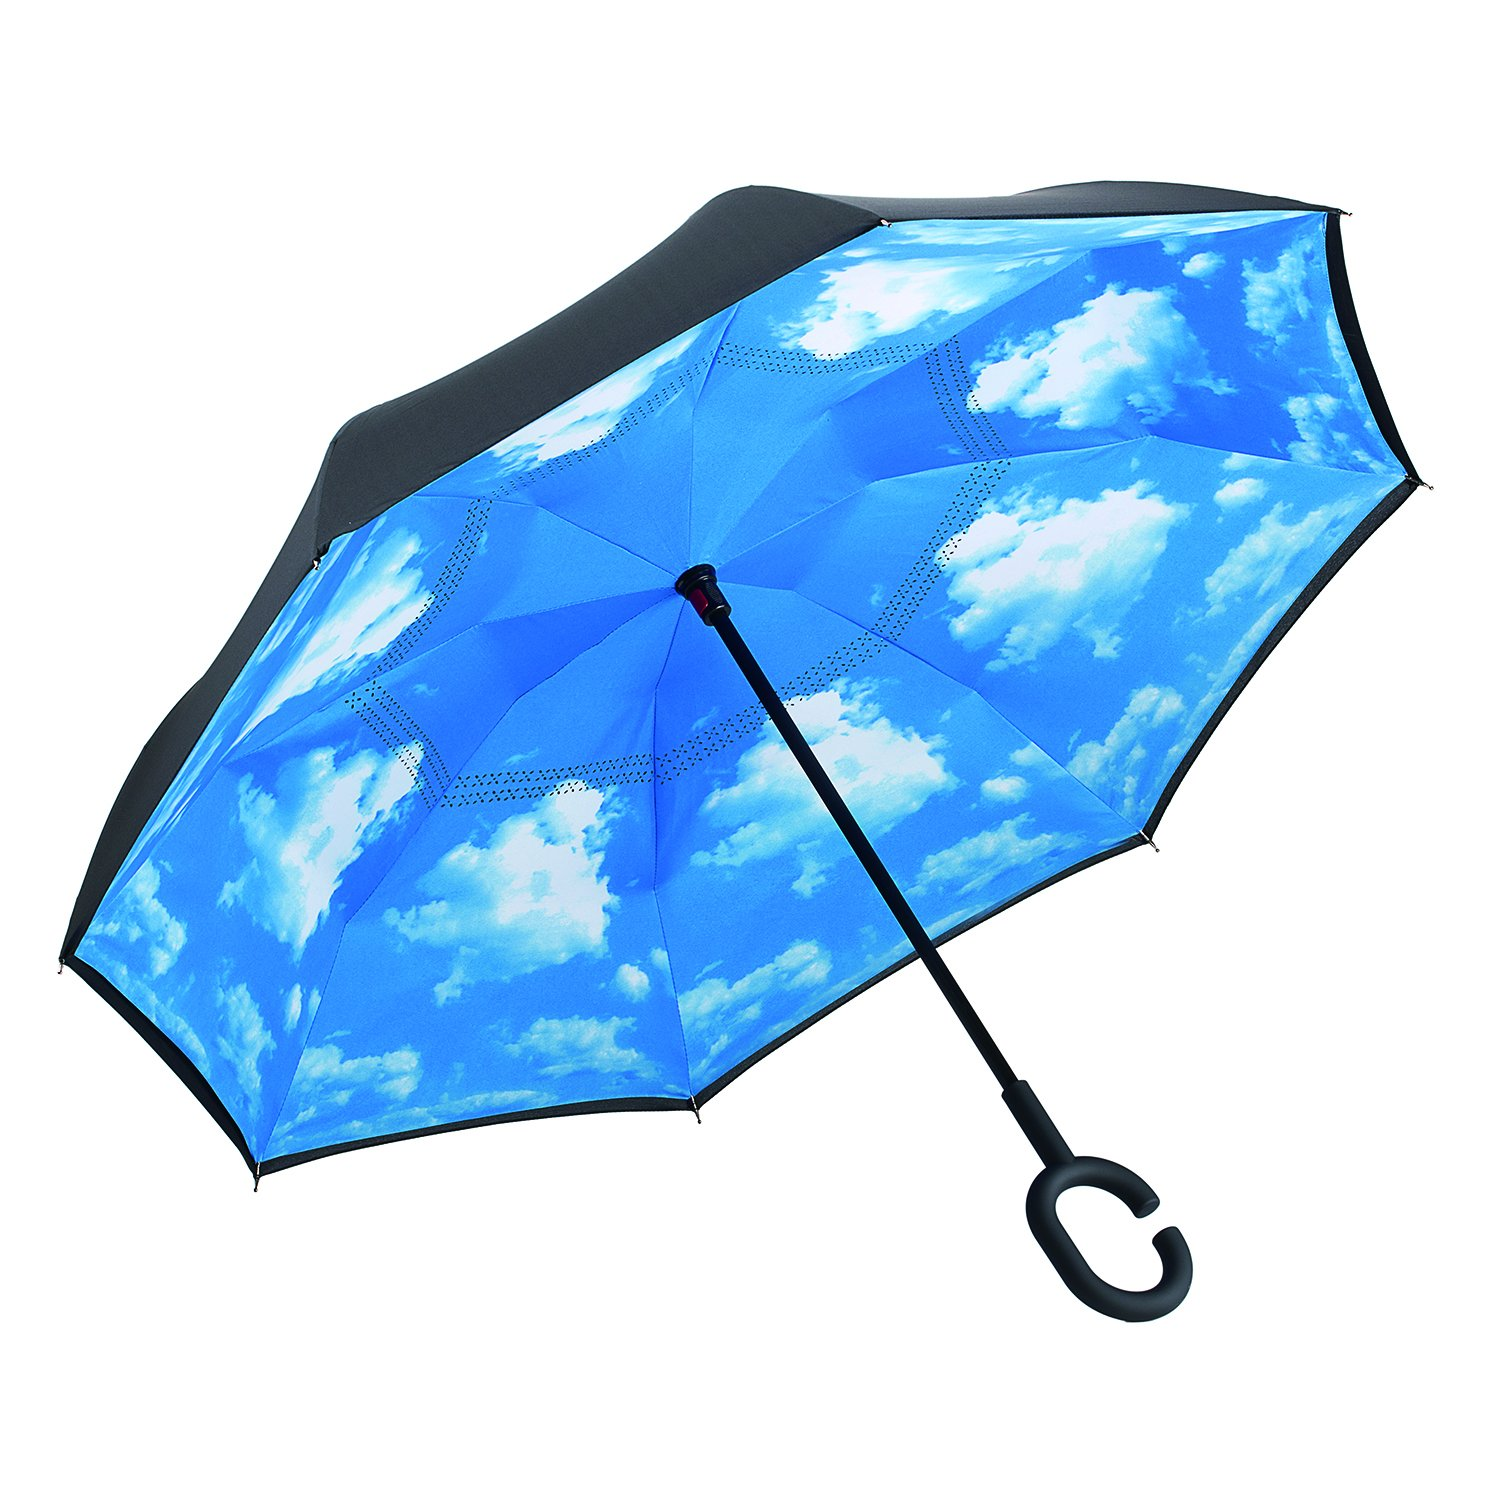 Amazon.com : Amagoing Car Inverted Umbrella Double Layer Windproof ...